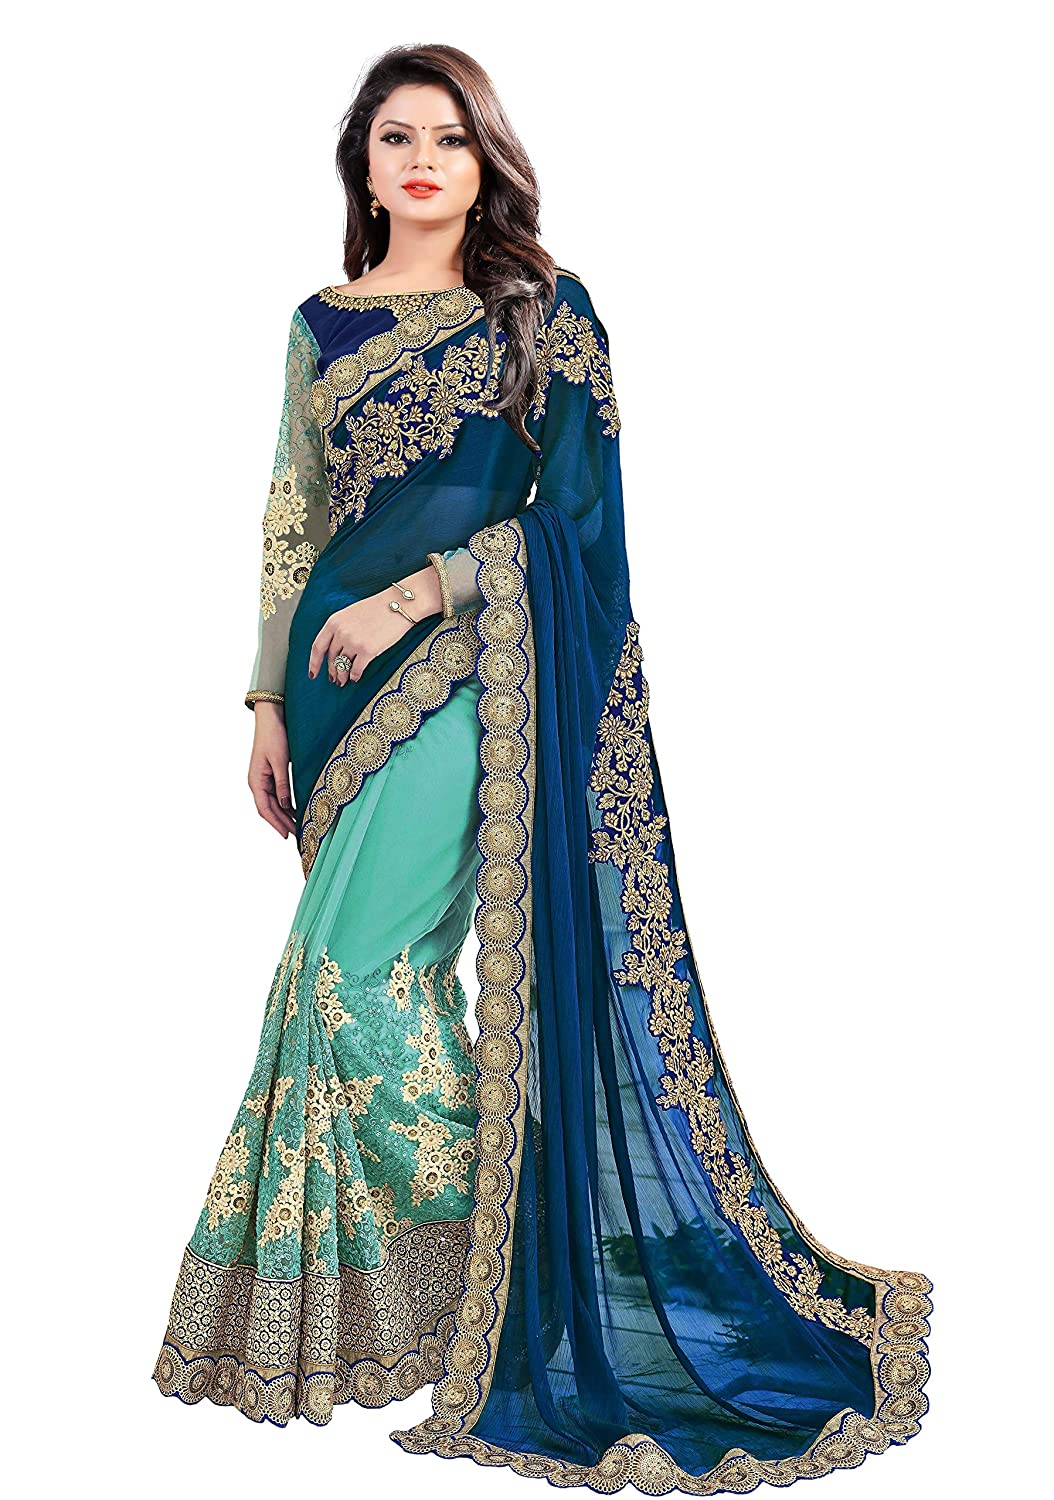 64191d8a6b Arohi Designer Silk, Georgette and Net Embroidered Saree with Blouse Piece  (Blue and Green, Free Size): Amazon.in: Clothing & Accessories